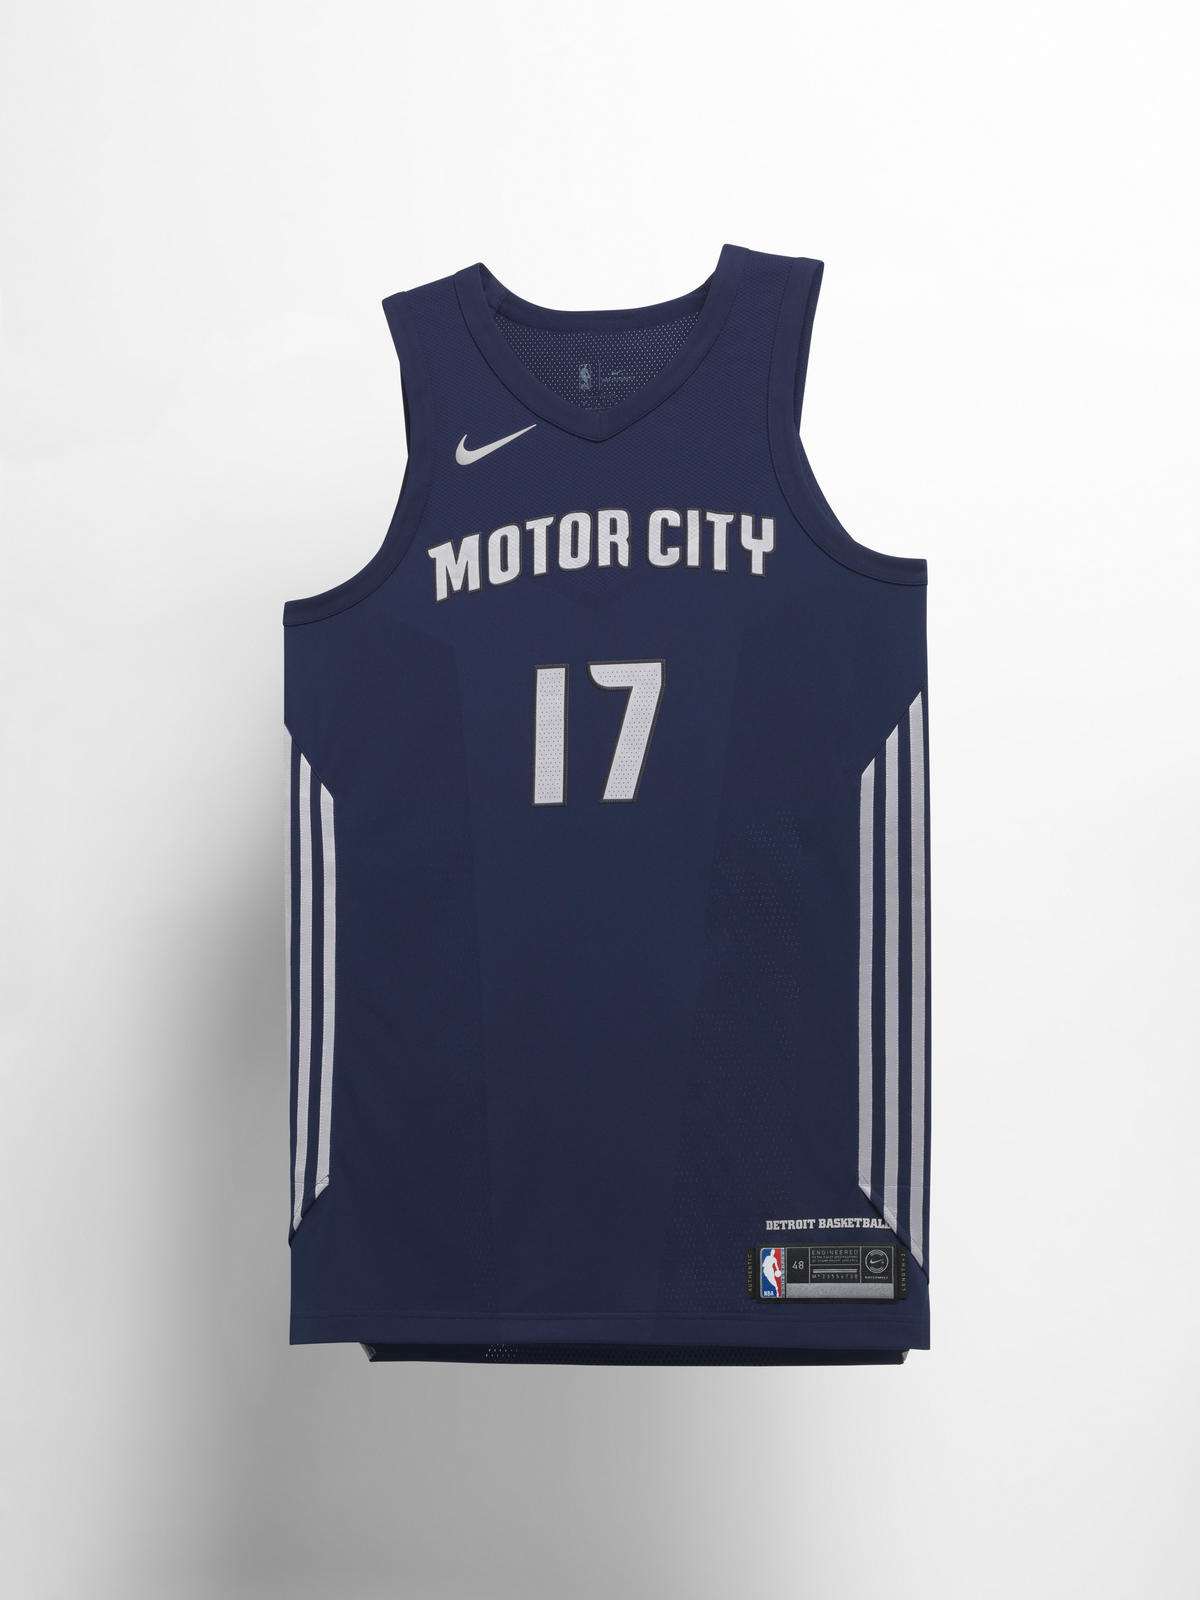 Nike_NBA_City_Edition_Uniform_Detroit_Pistons_0119_native_1600